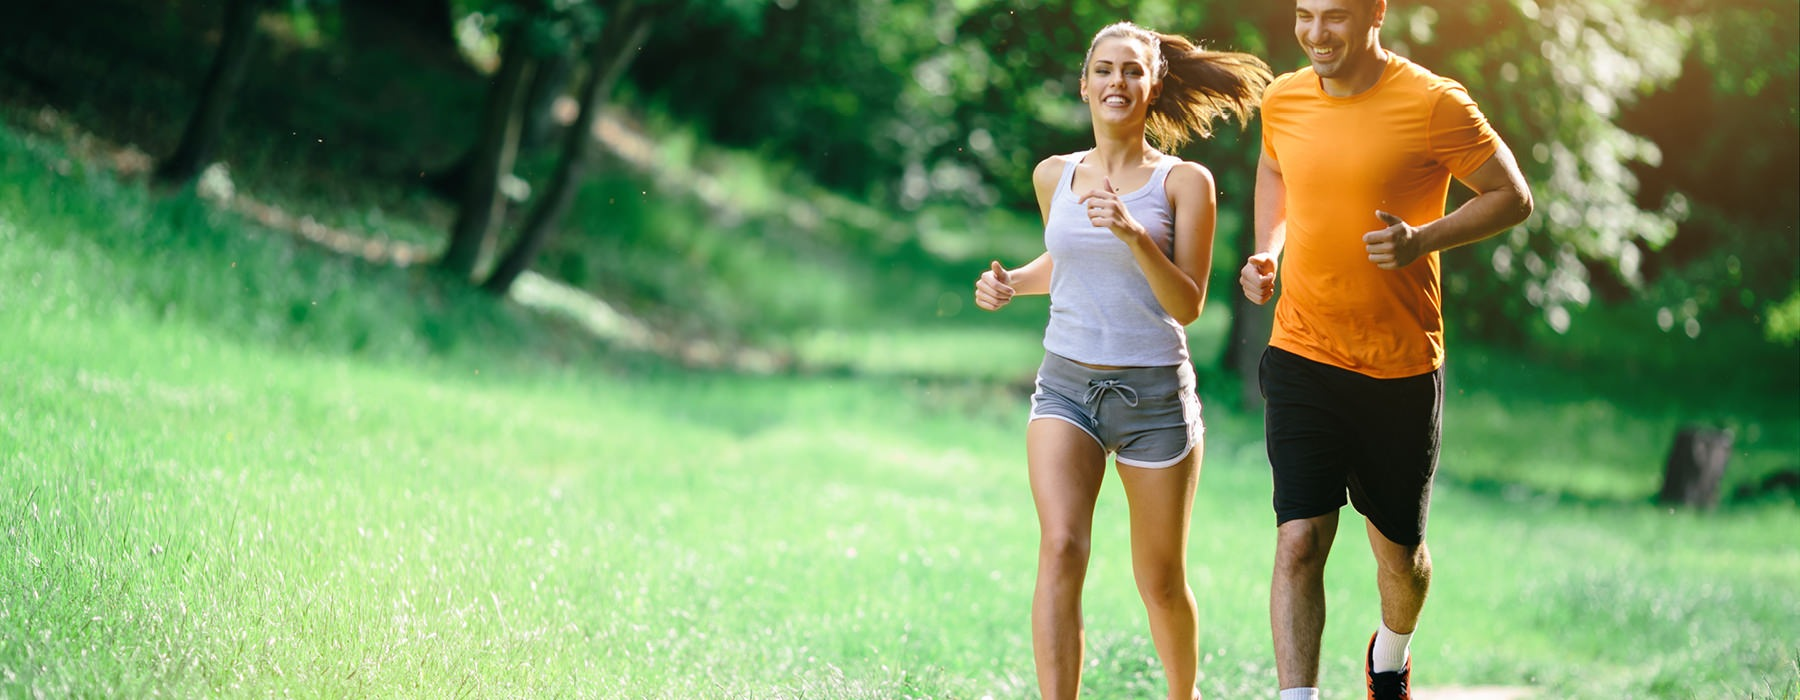 Man and woman jogging in wooded area.